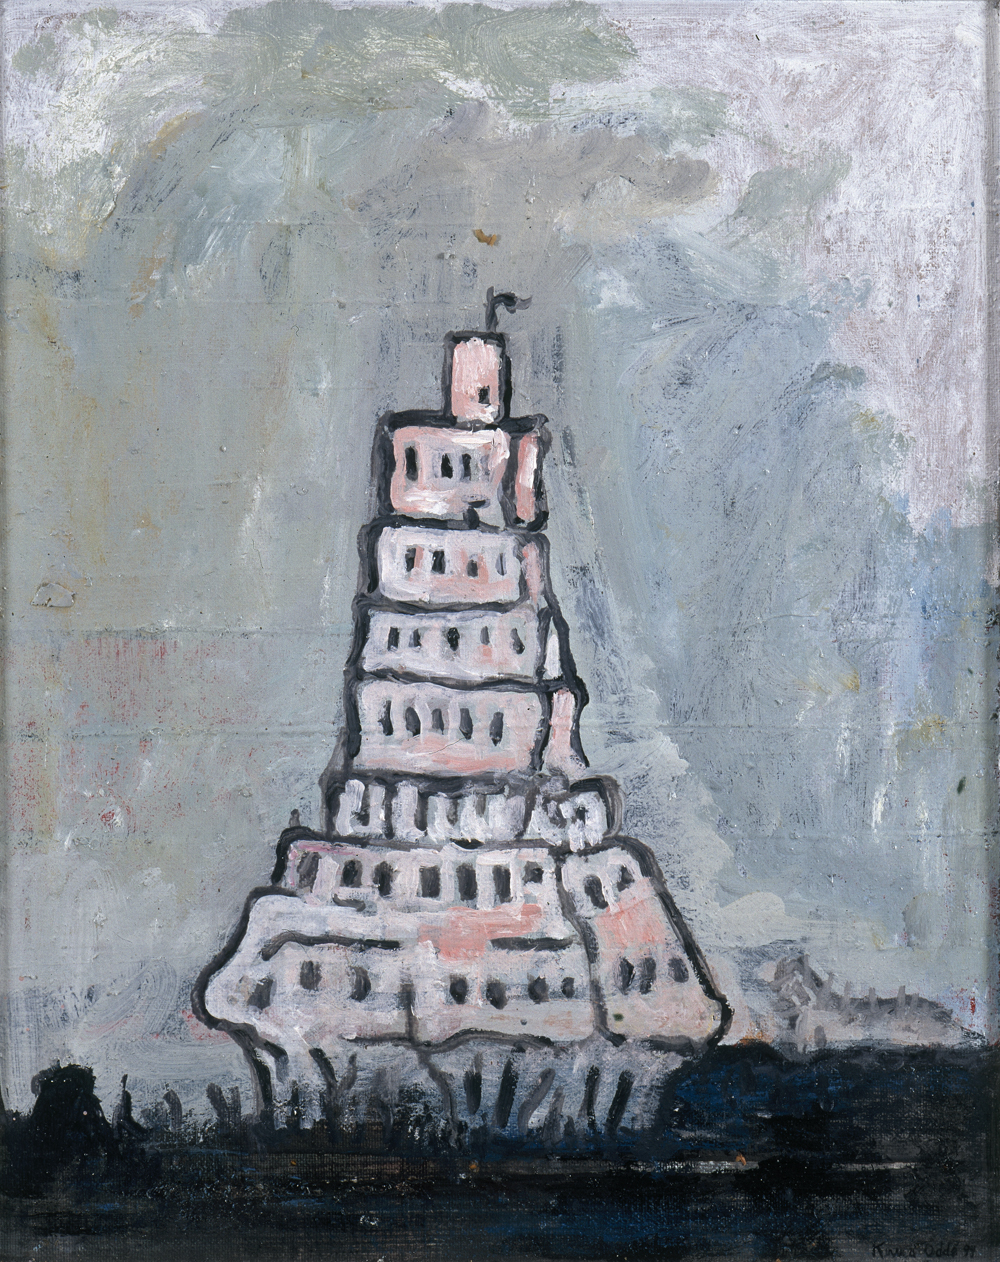 Canvas_Tower_50x40cm_Oil on canvas_2000